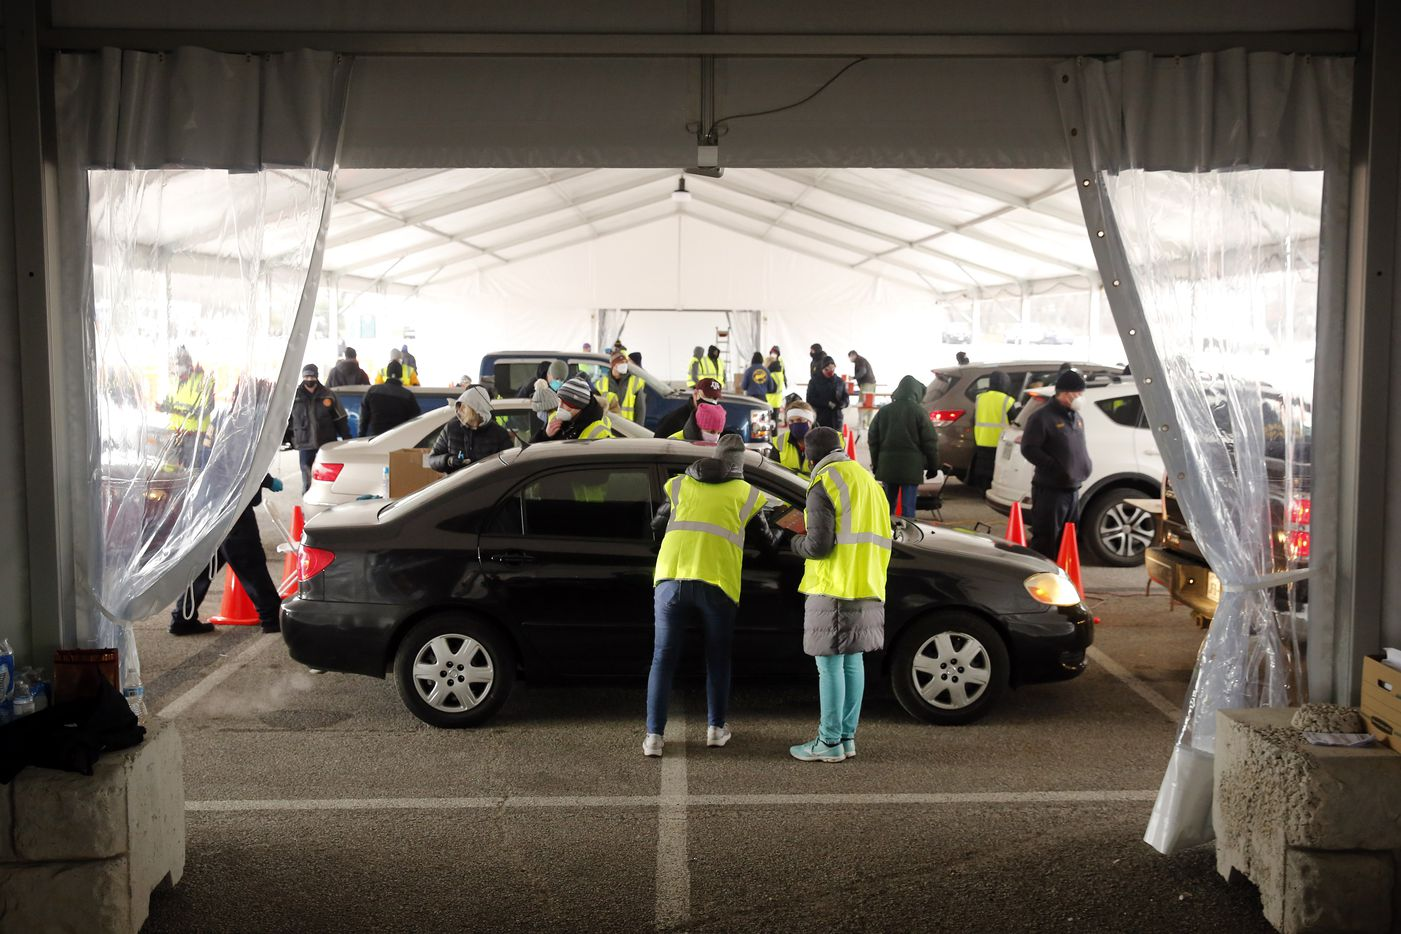 Large drive-through tents have been set up to handle the thousands of people lined up for COVID-19 vaccinations at Fair Park in Dallas. (Tom Fox/The Dallas Morning News)